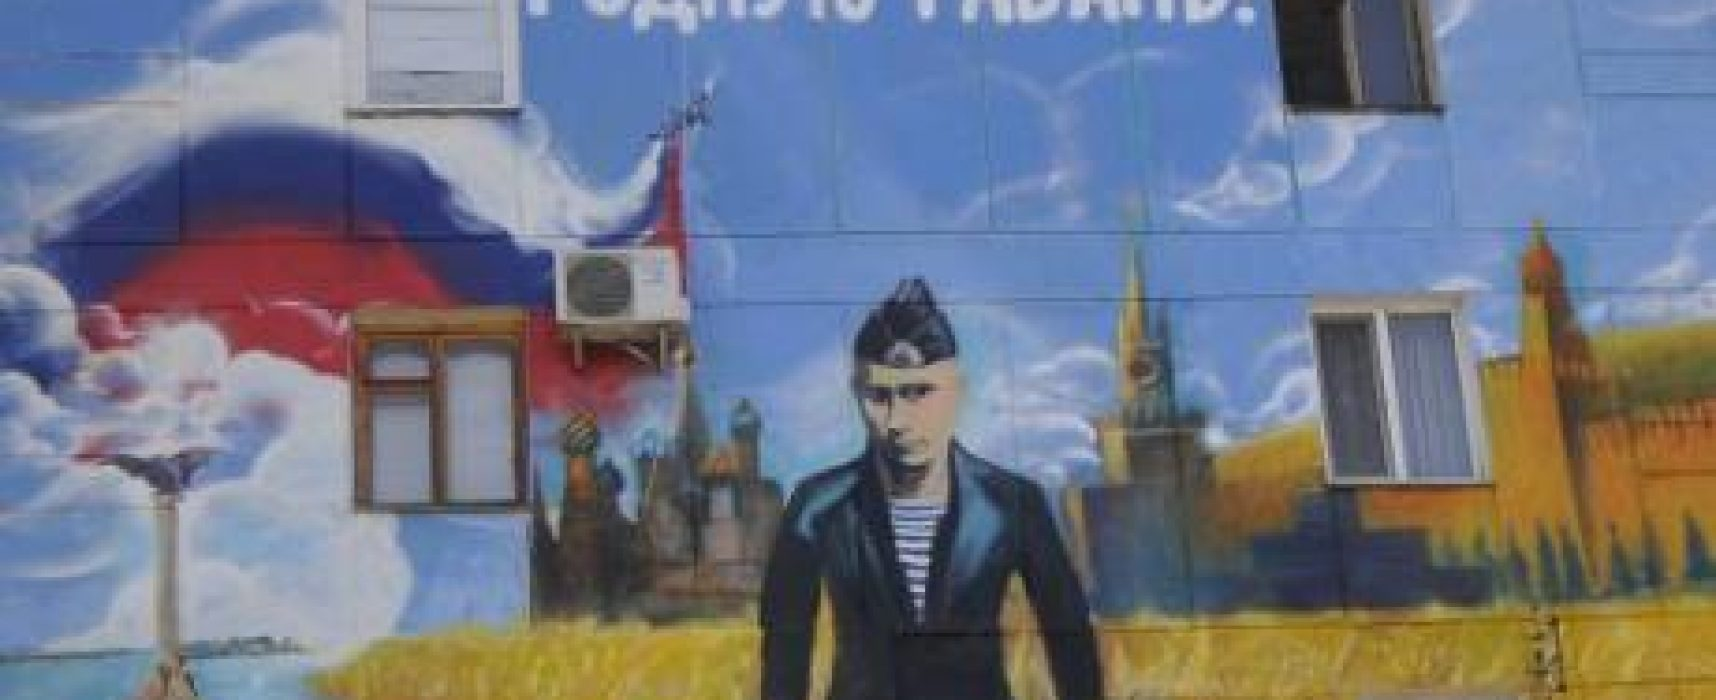 The limits of anti-Americanism in Russia